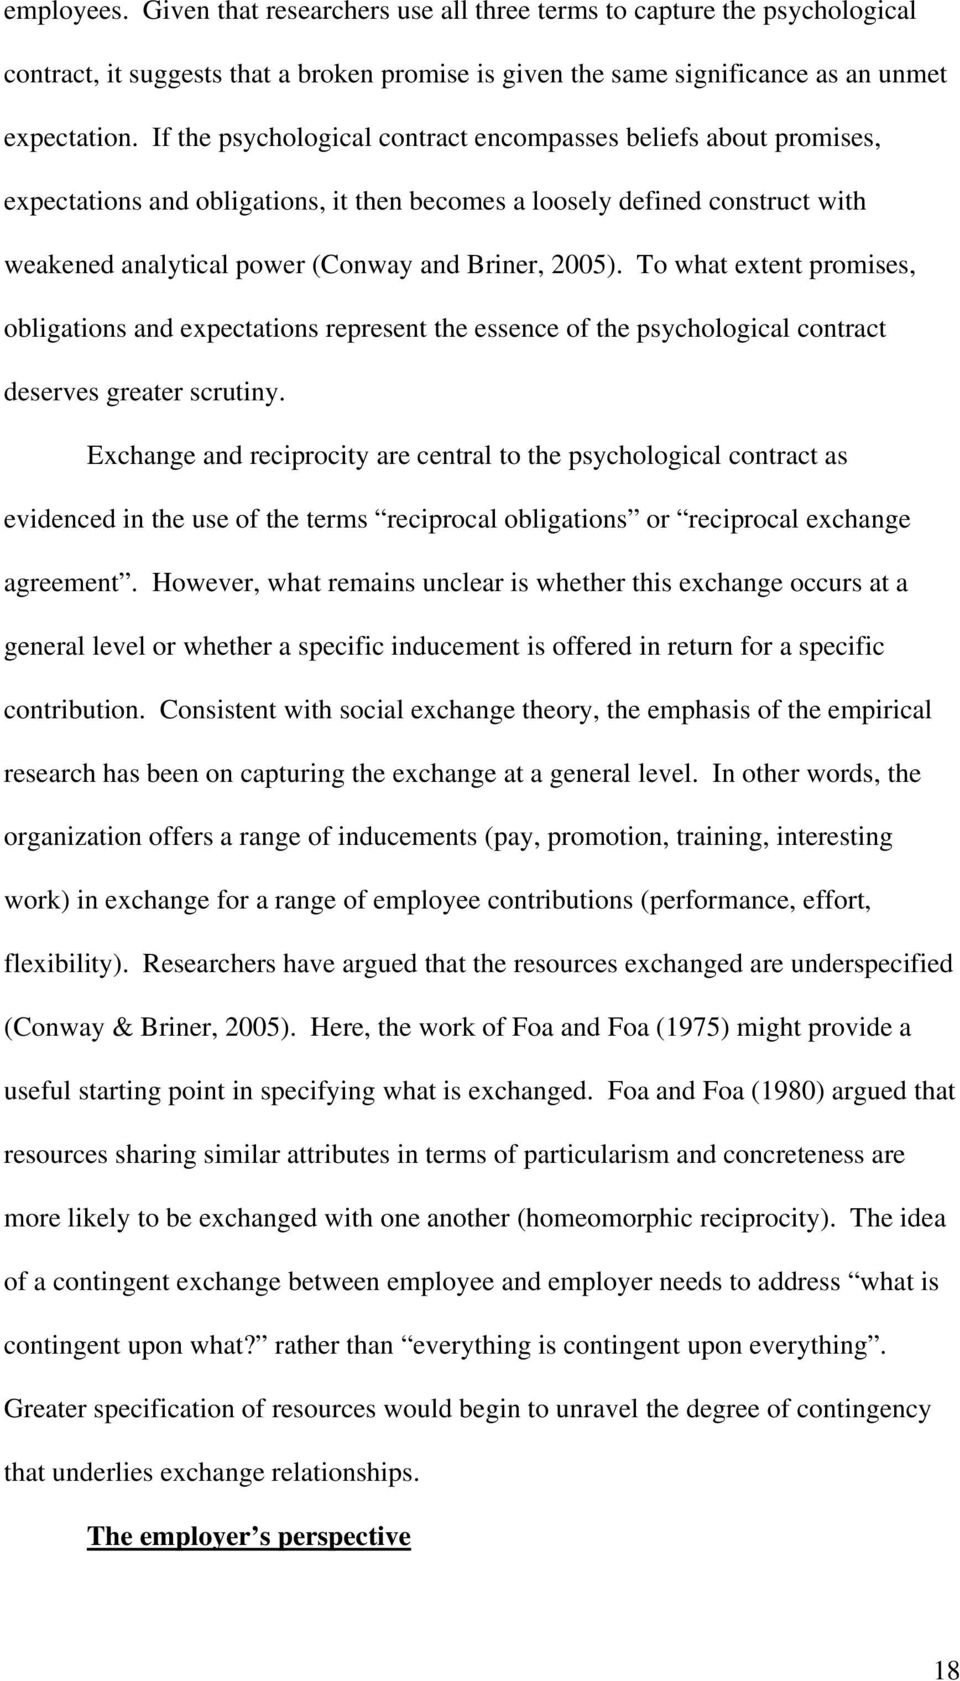 Jacqueline Coyle Shapiro Psychological Contracts Book Section Pdf